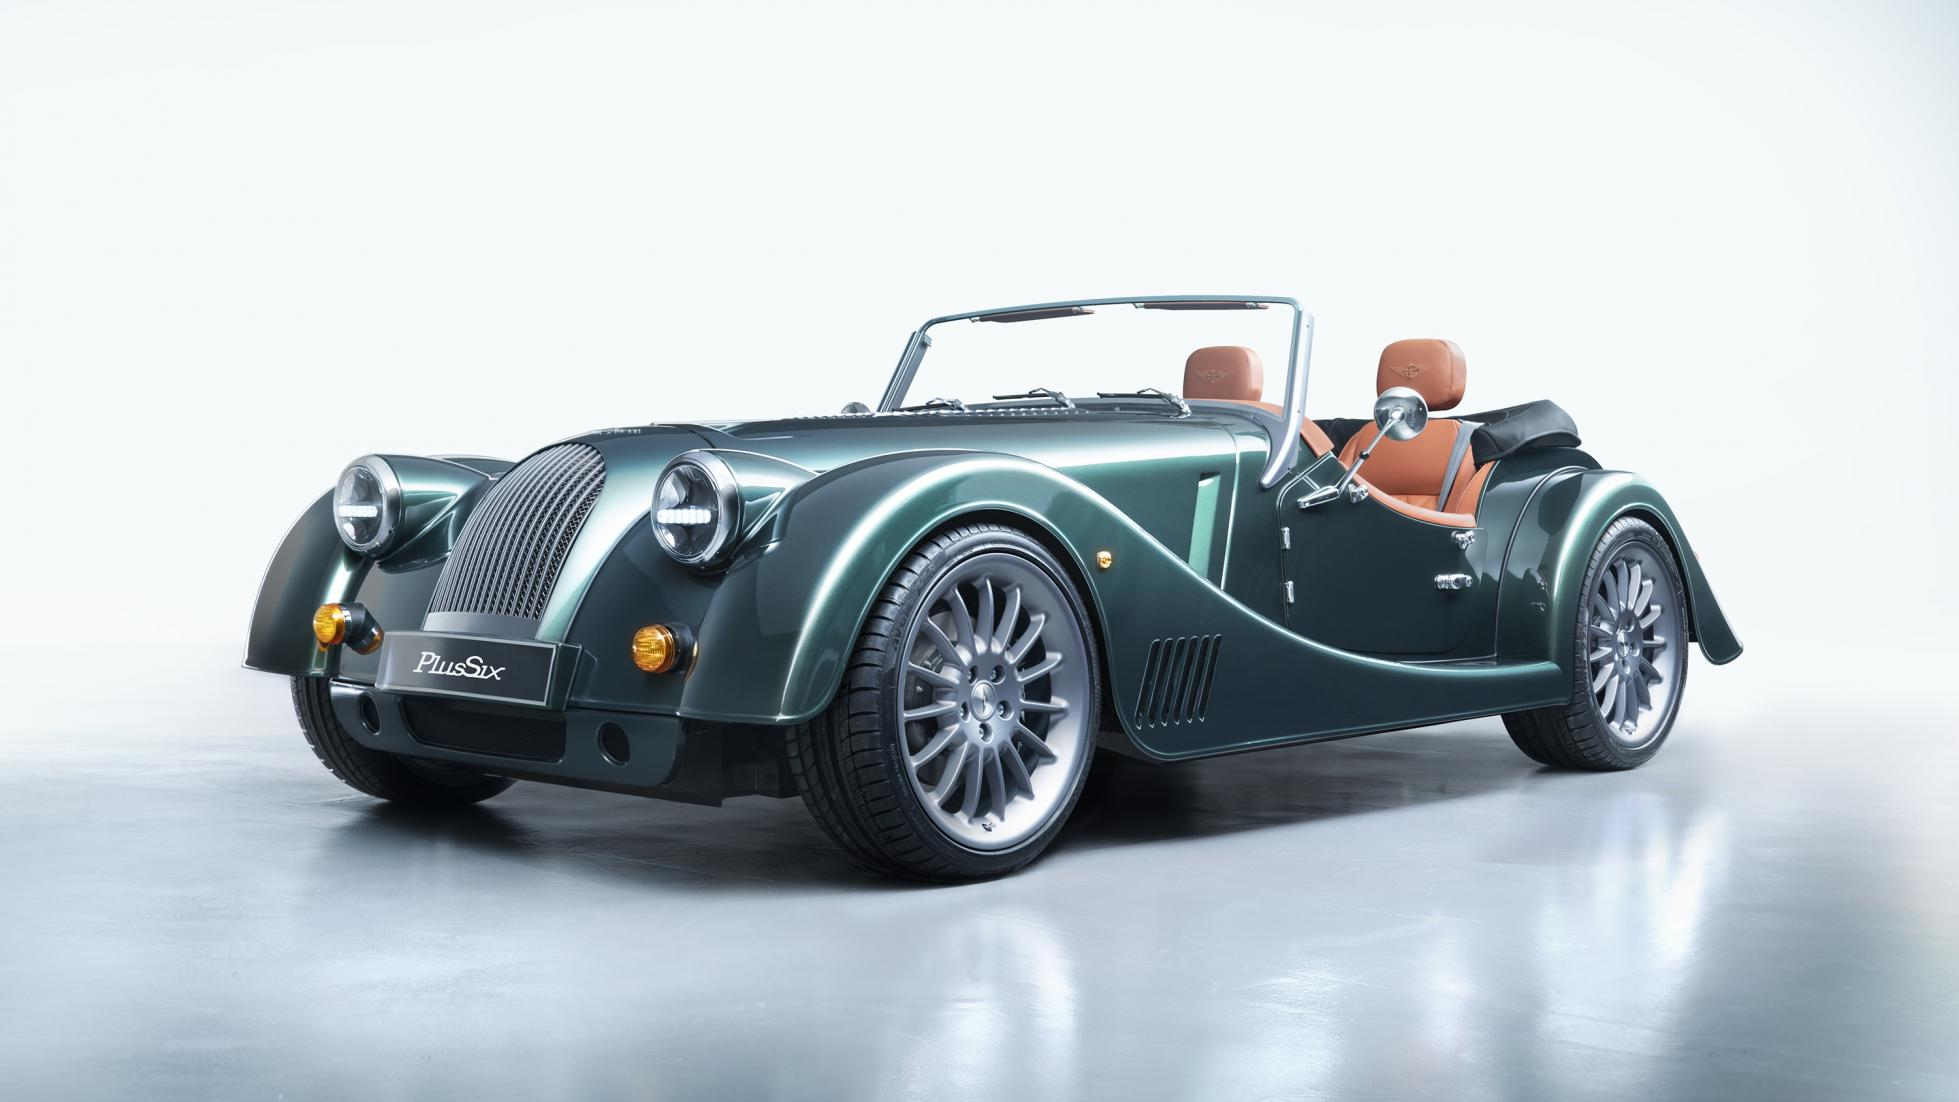 Morgan Plus Six front 3/4